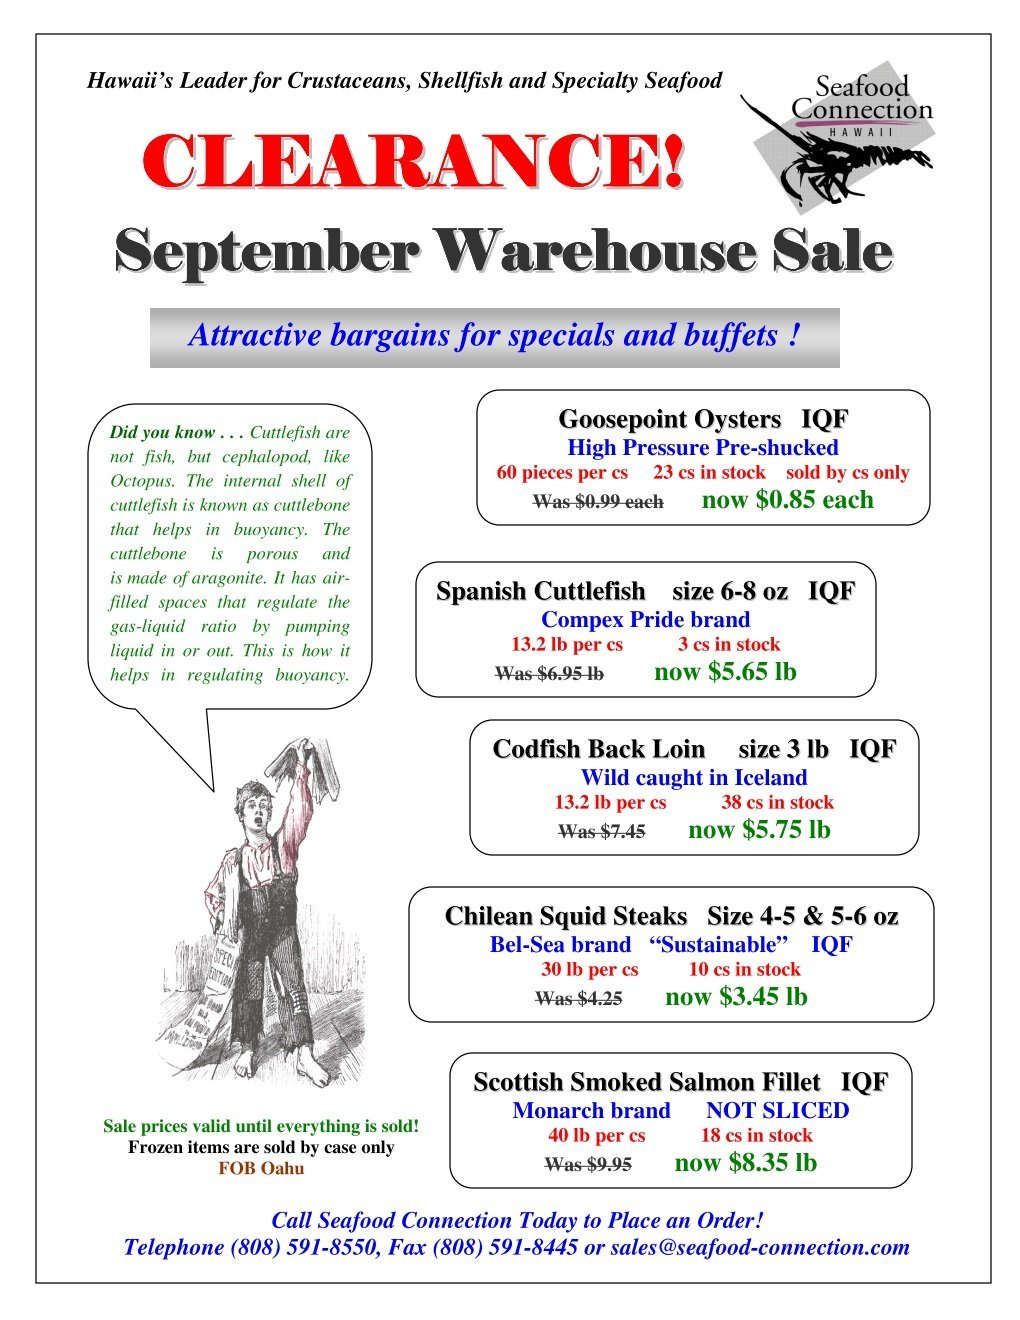 warehouse-clearance-wed-21-sept-2016-jpeg